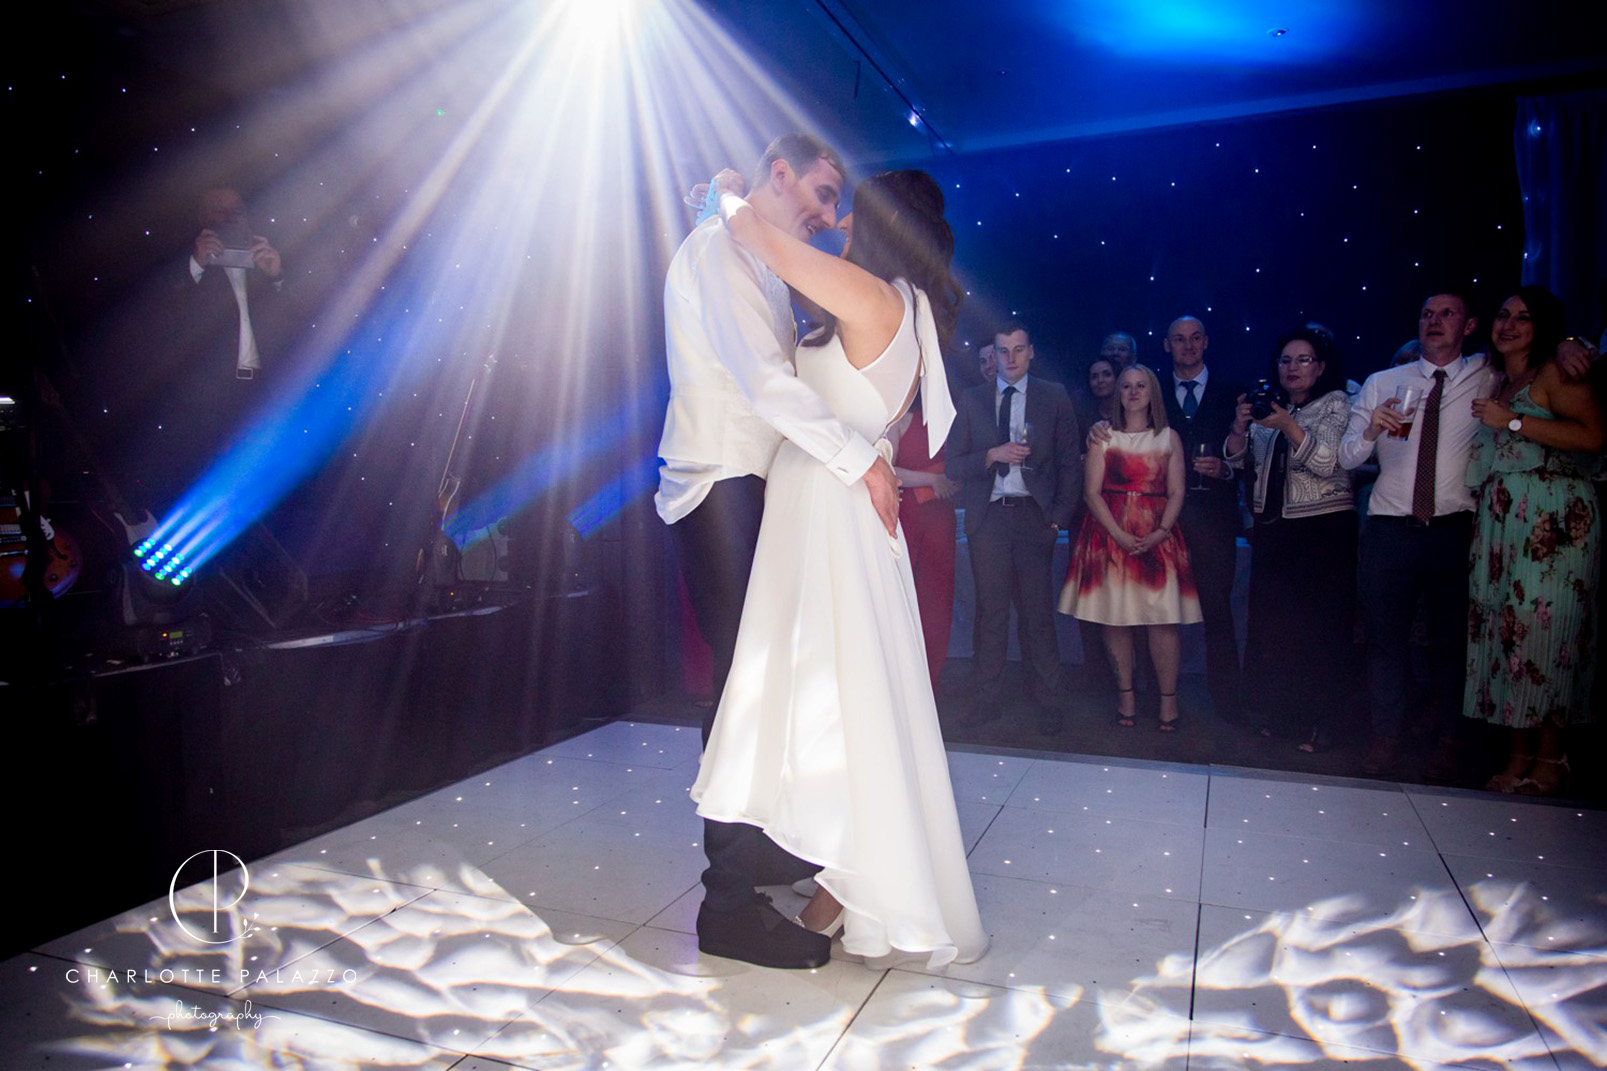 Fine_art_wedding_Photography_Cheshire_Wedding_Venues_The_Mere_Resort_0046.jpg